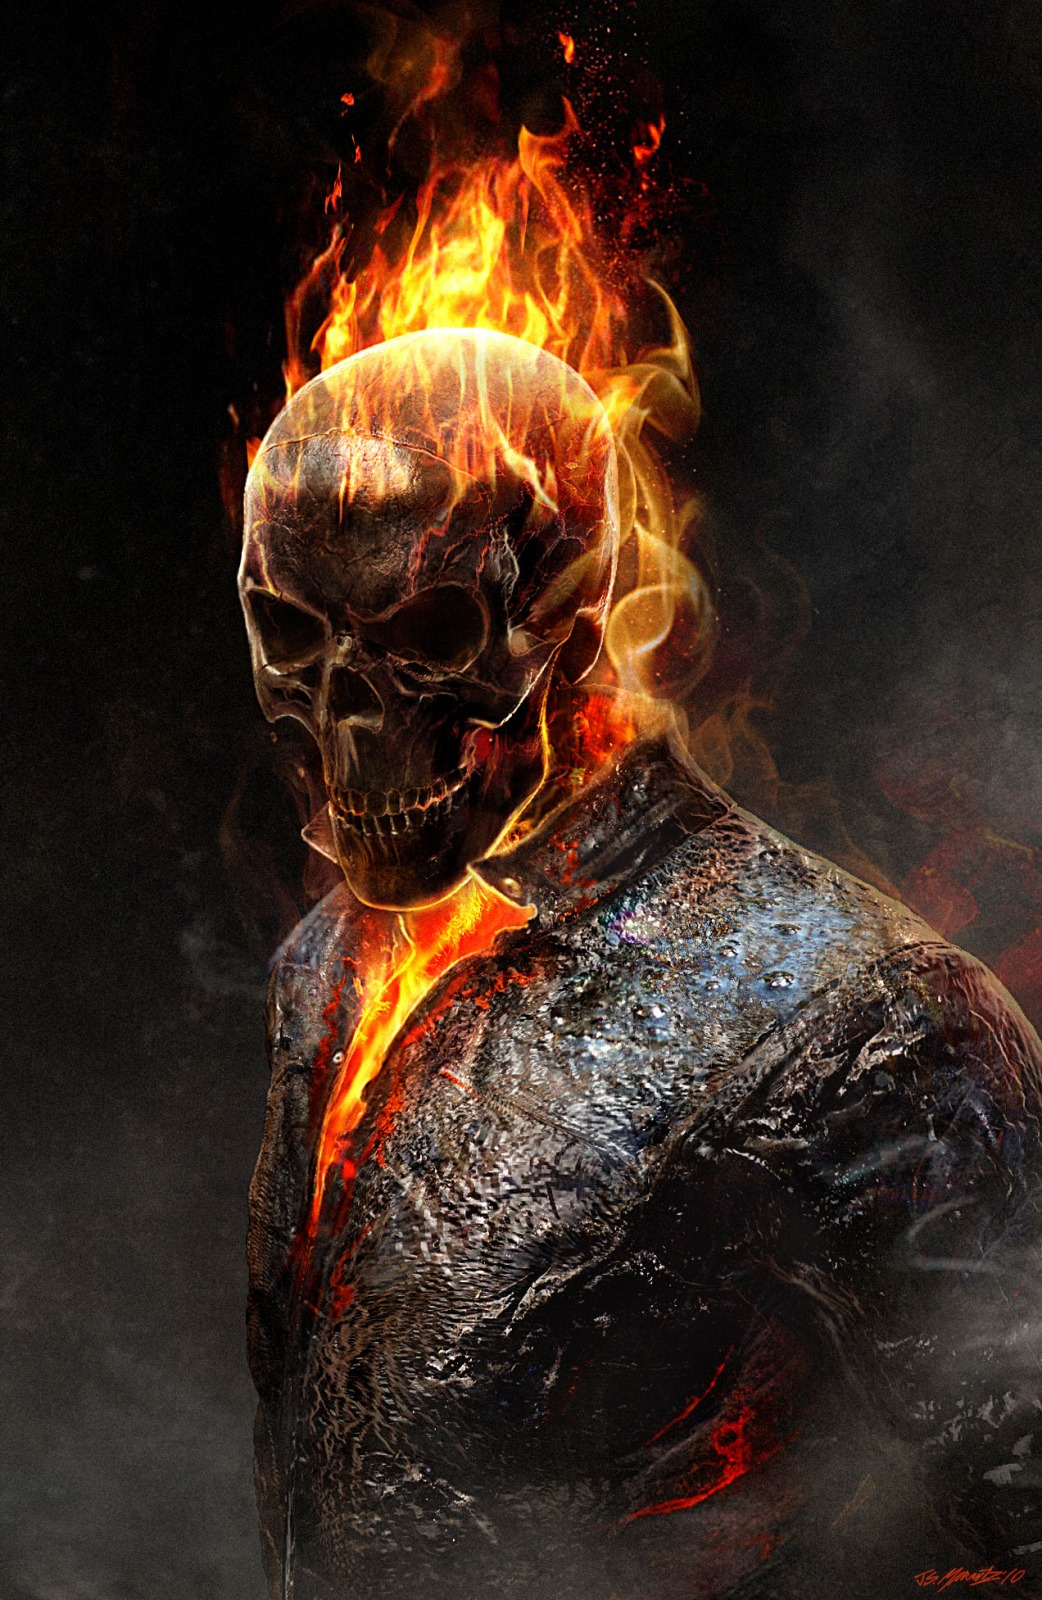 Ghost Rider - not a huge fan of the movie(s) but this image